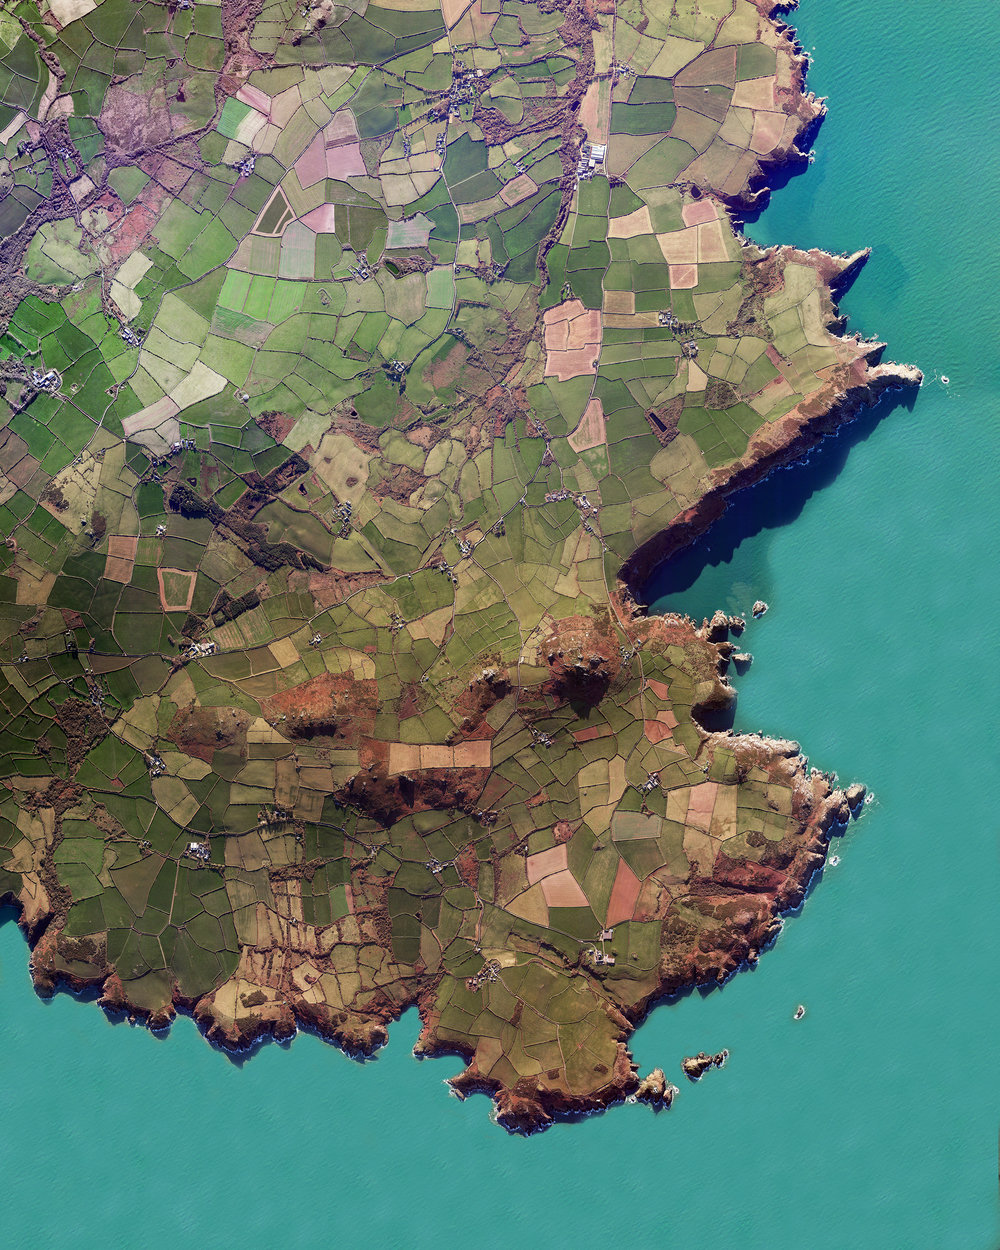 "Check out this Overview of Pembrokeshire County, Wales, created by our founder Benjamin Grant. This area is home to Pembrokeshire Coast National Park, which includes a 186-mile walking trail called the Pembrokeshire Coast Path. In the north of the county are the Preseli Hills, a wide stretch of high moorland with many prehistoric sites and the probable source of bluestones used to construct the inner circle of Stonehenge in England.  51°50'42.0""N, 4°50'32.0""W  Source imagery: DigitalGlobe"